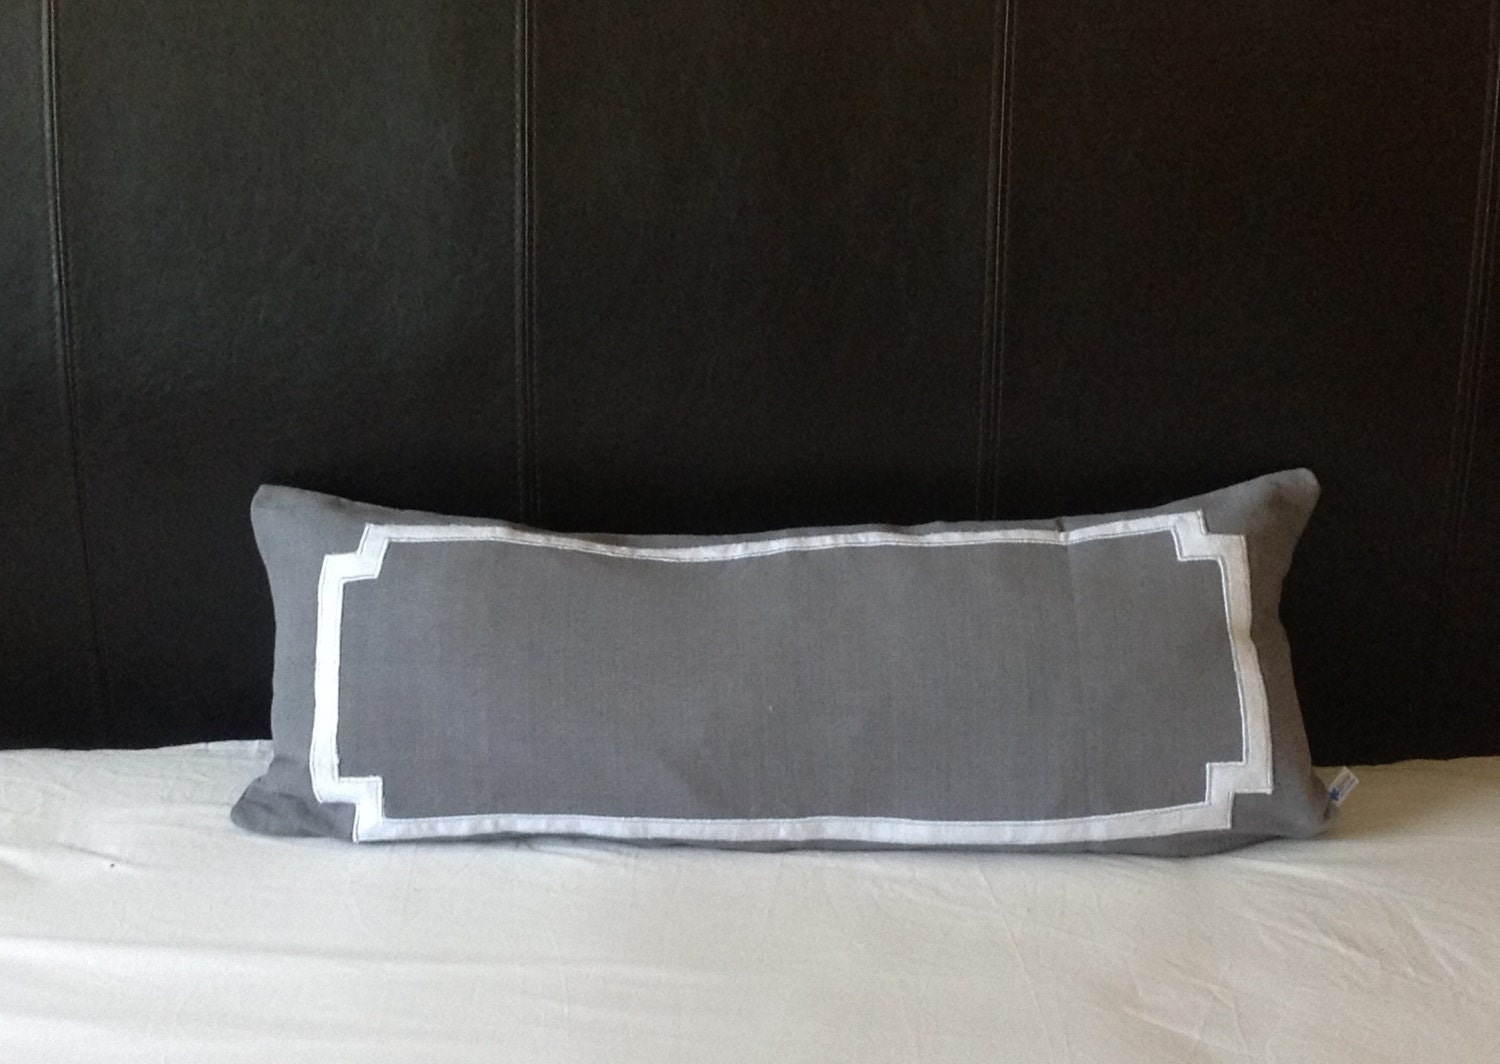 Long Lumbar Gray Pillows Body Pillows Rectangle Pillows for